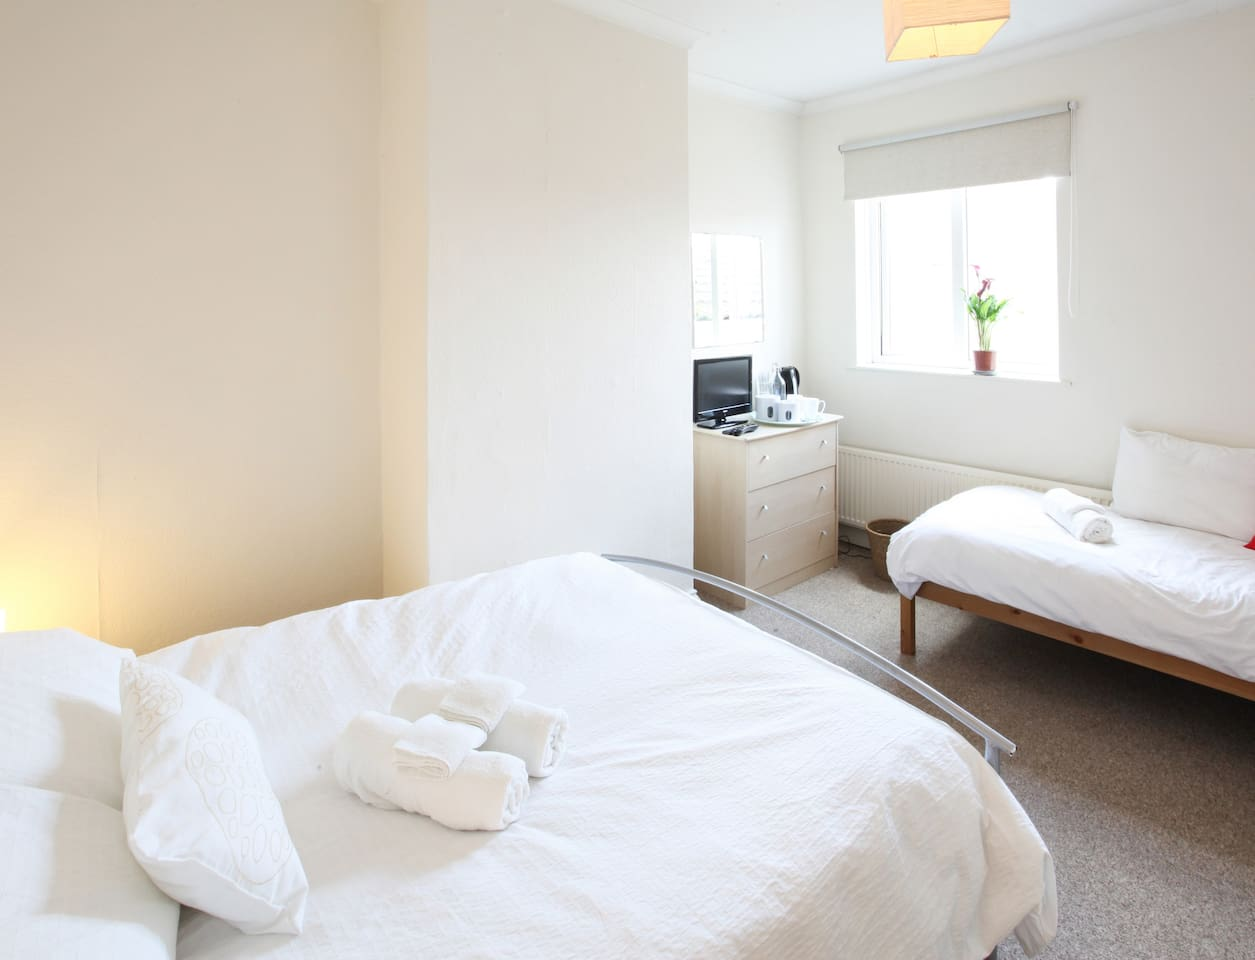 comfy beds, wifi, cable tv, tea and coffee, hairdryer, chest of drawers